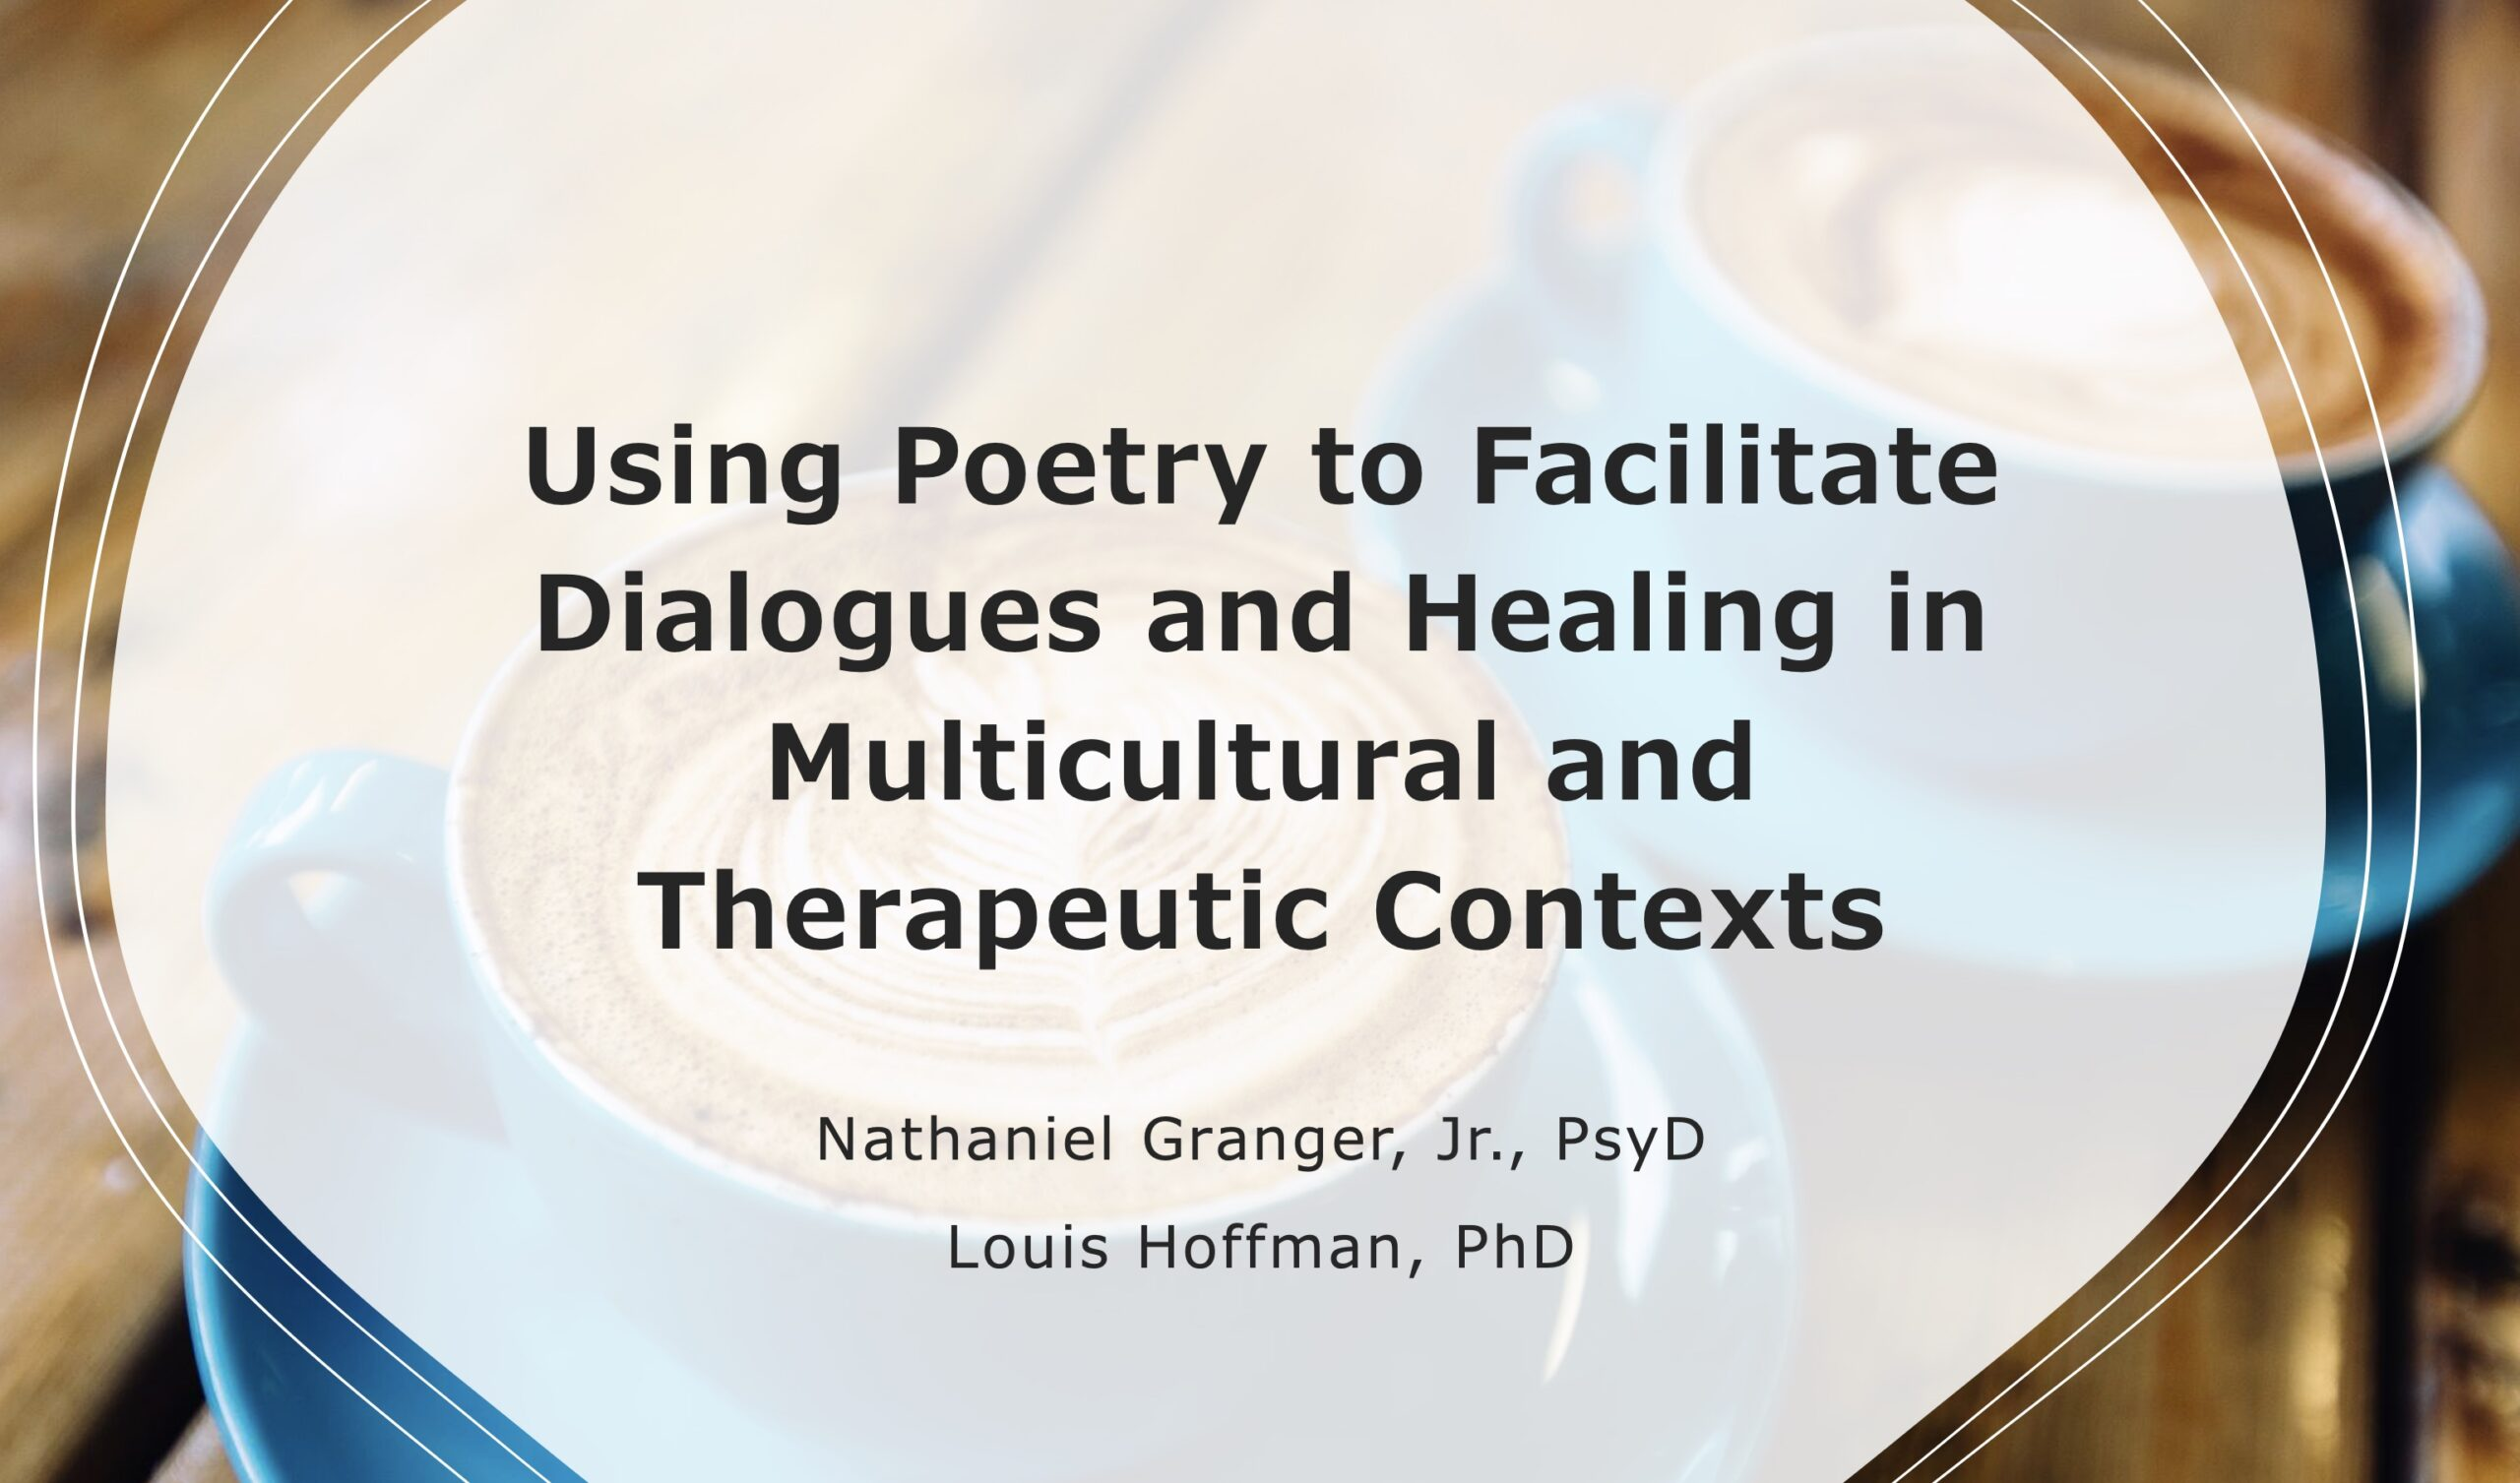 Using Poetry to Facilitate Dialogues and Healing in Multicultural Contexts (Archived Version) Image